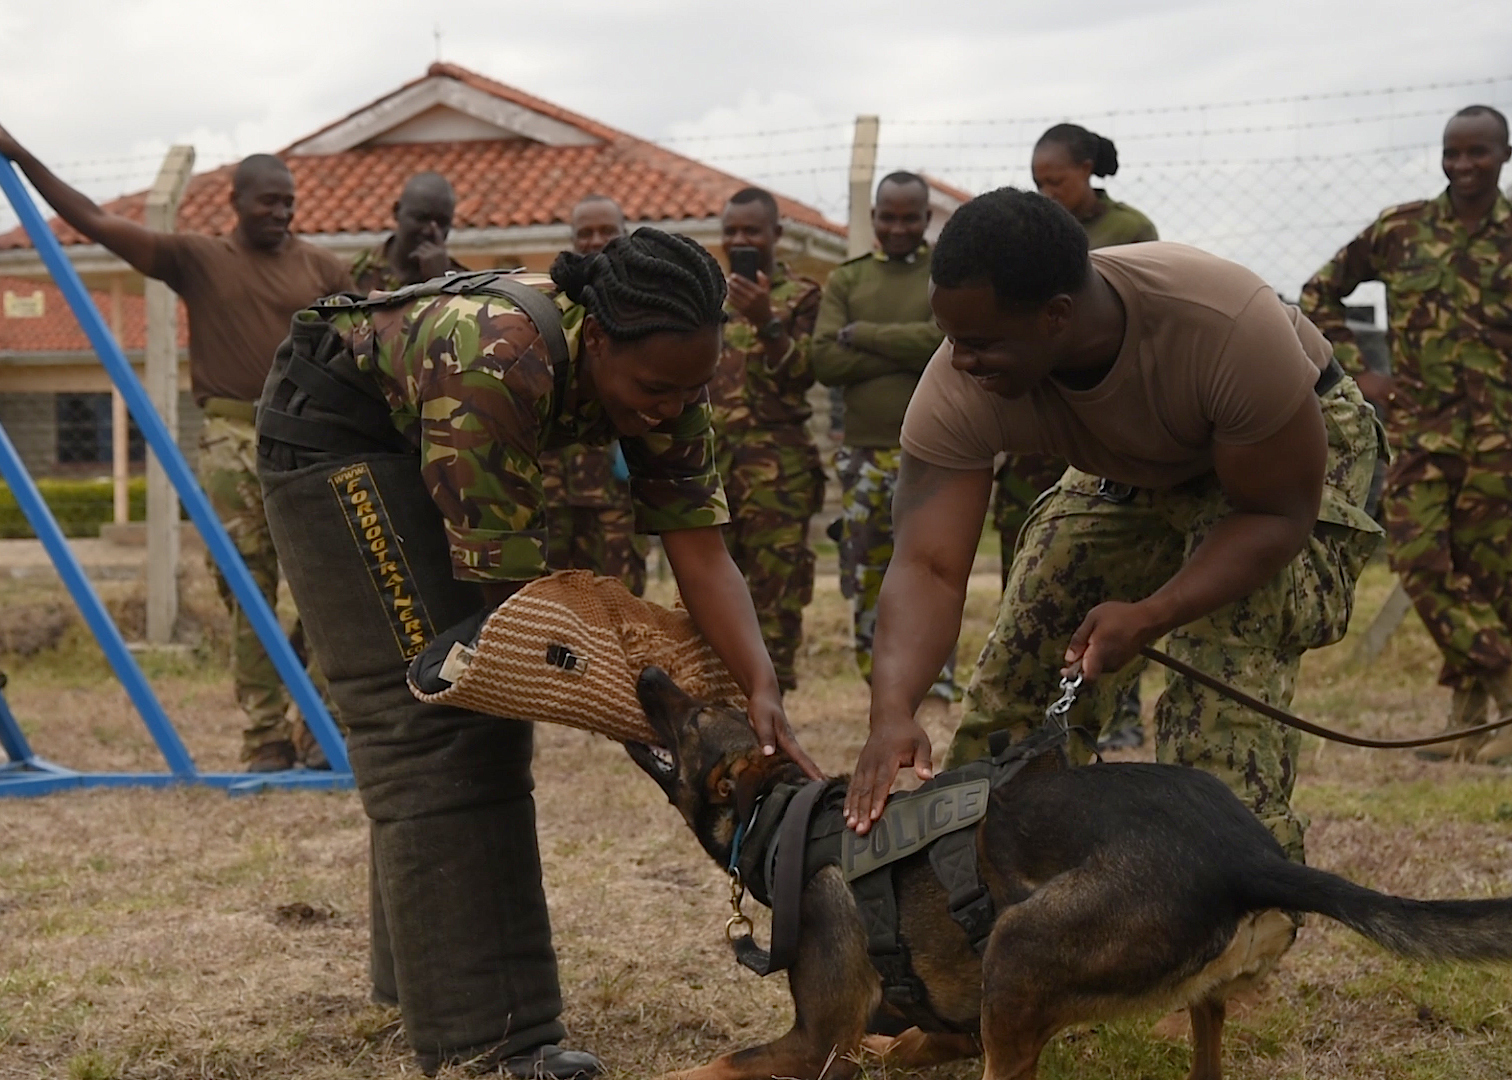 U.S. Navy Master at Arms 2nd Class Dontay Harris, a military working dog (MWD) handler deployed to Camp Lemonnier, Djibouti, assists a member of the Kenya Defence Force's (KDF) 1st Canine Regiment during a bite training demonstration with his MWD Gina. U.S. and Kenyan MWD handlers were able to share insights into their profession during the week-long exchange between the Civil Affairs Battalion's Functional Specialty Team assigned to Combined Joint Task Force-Horn of Africa and the Kenya Defence Force. (U.S. Air Force photo by Senior Airman Kirsten Brandes)